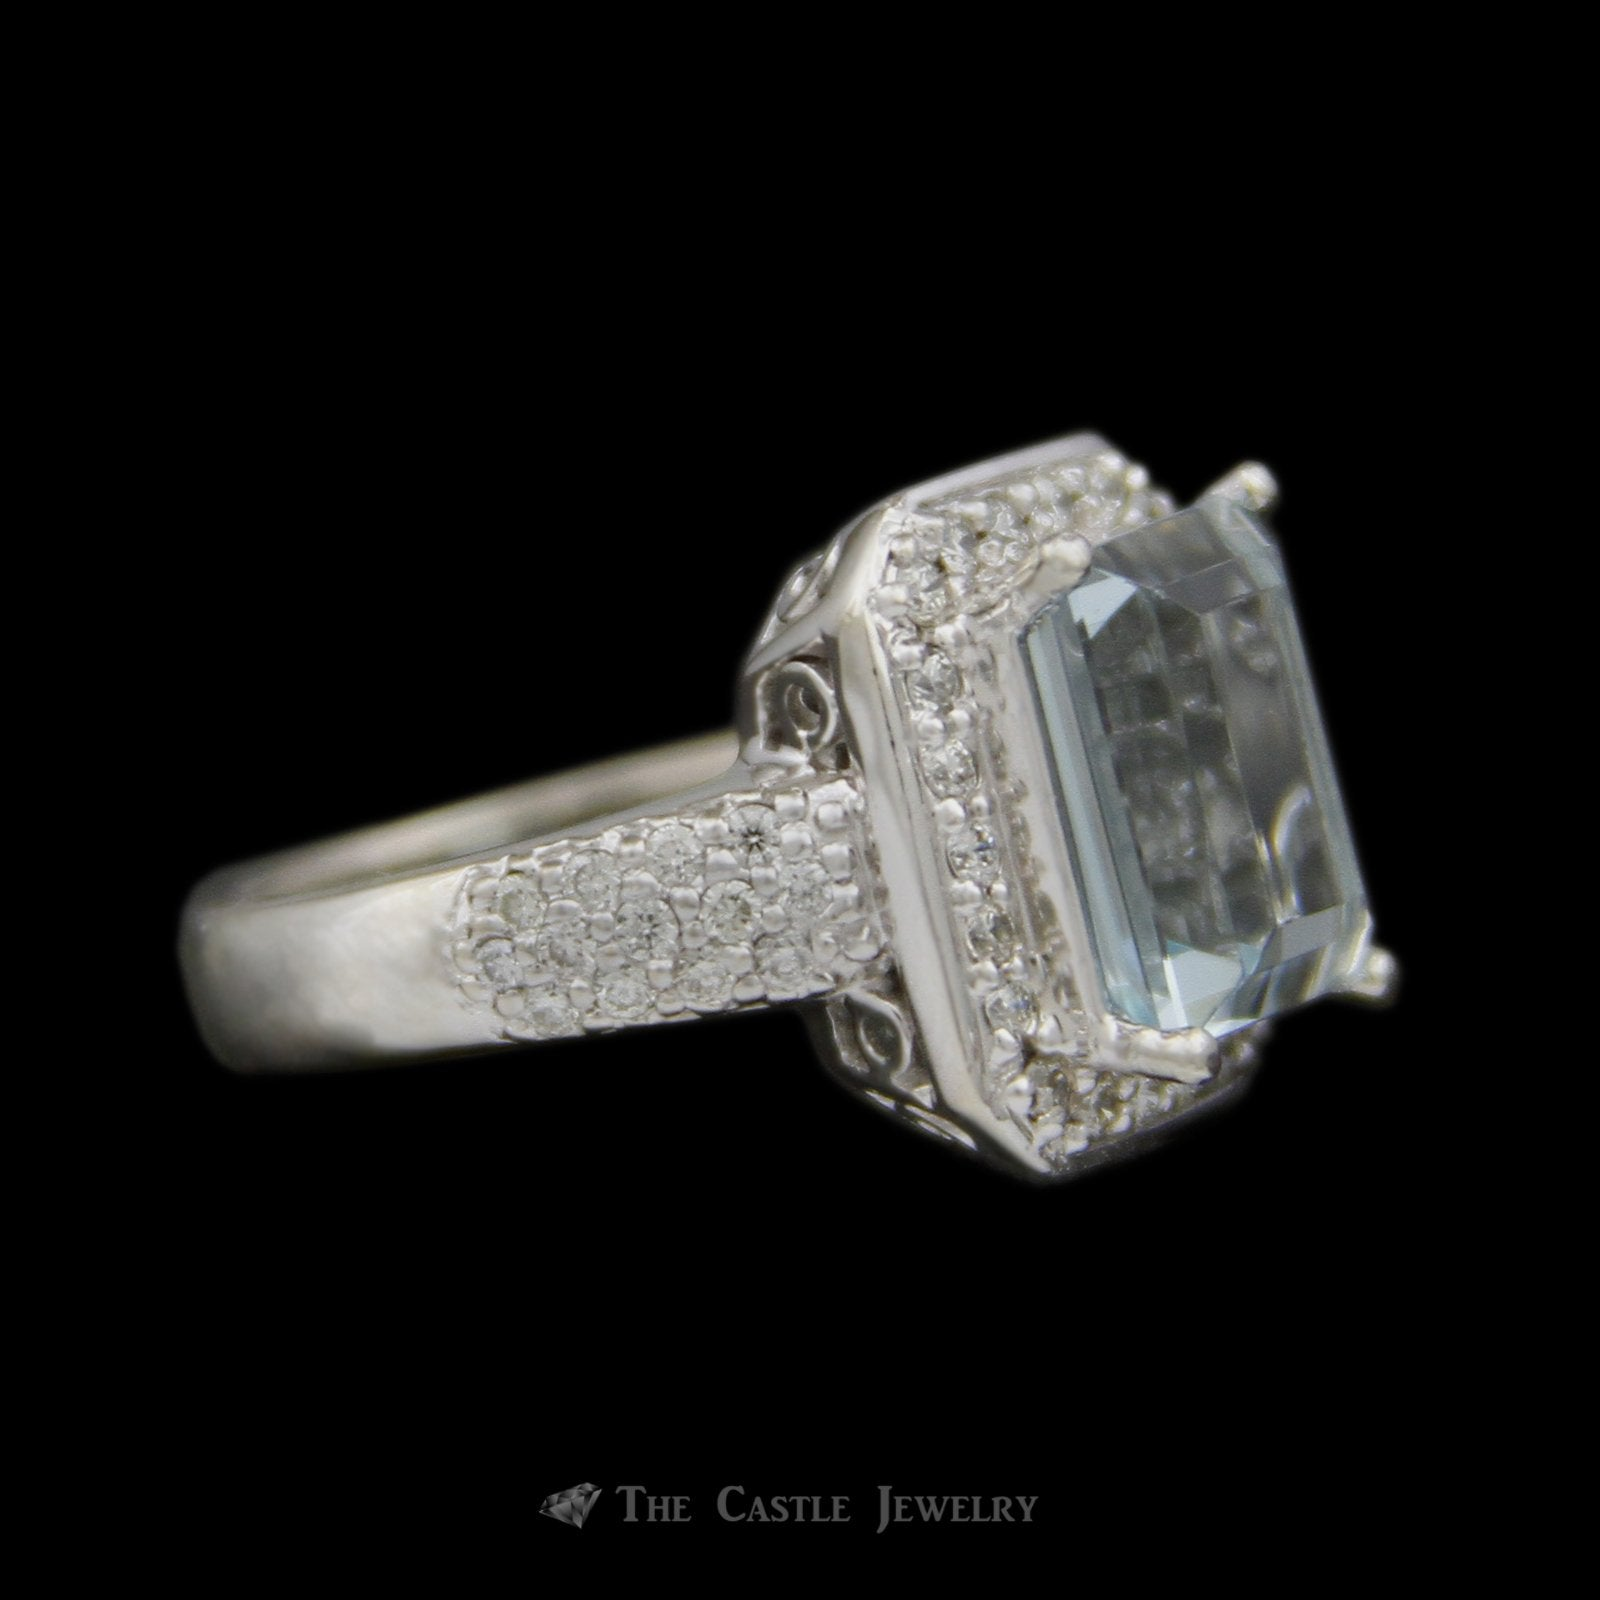 Emerald Cut 4.21ct Aquamarine Ring w/ Round Brilliant Cut Diamond Bezel & Sides in 14k White Gold-2